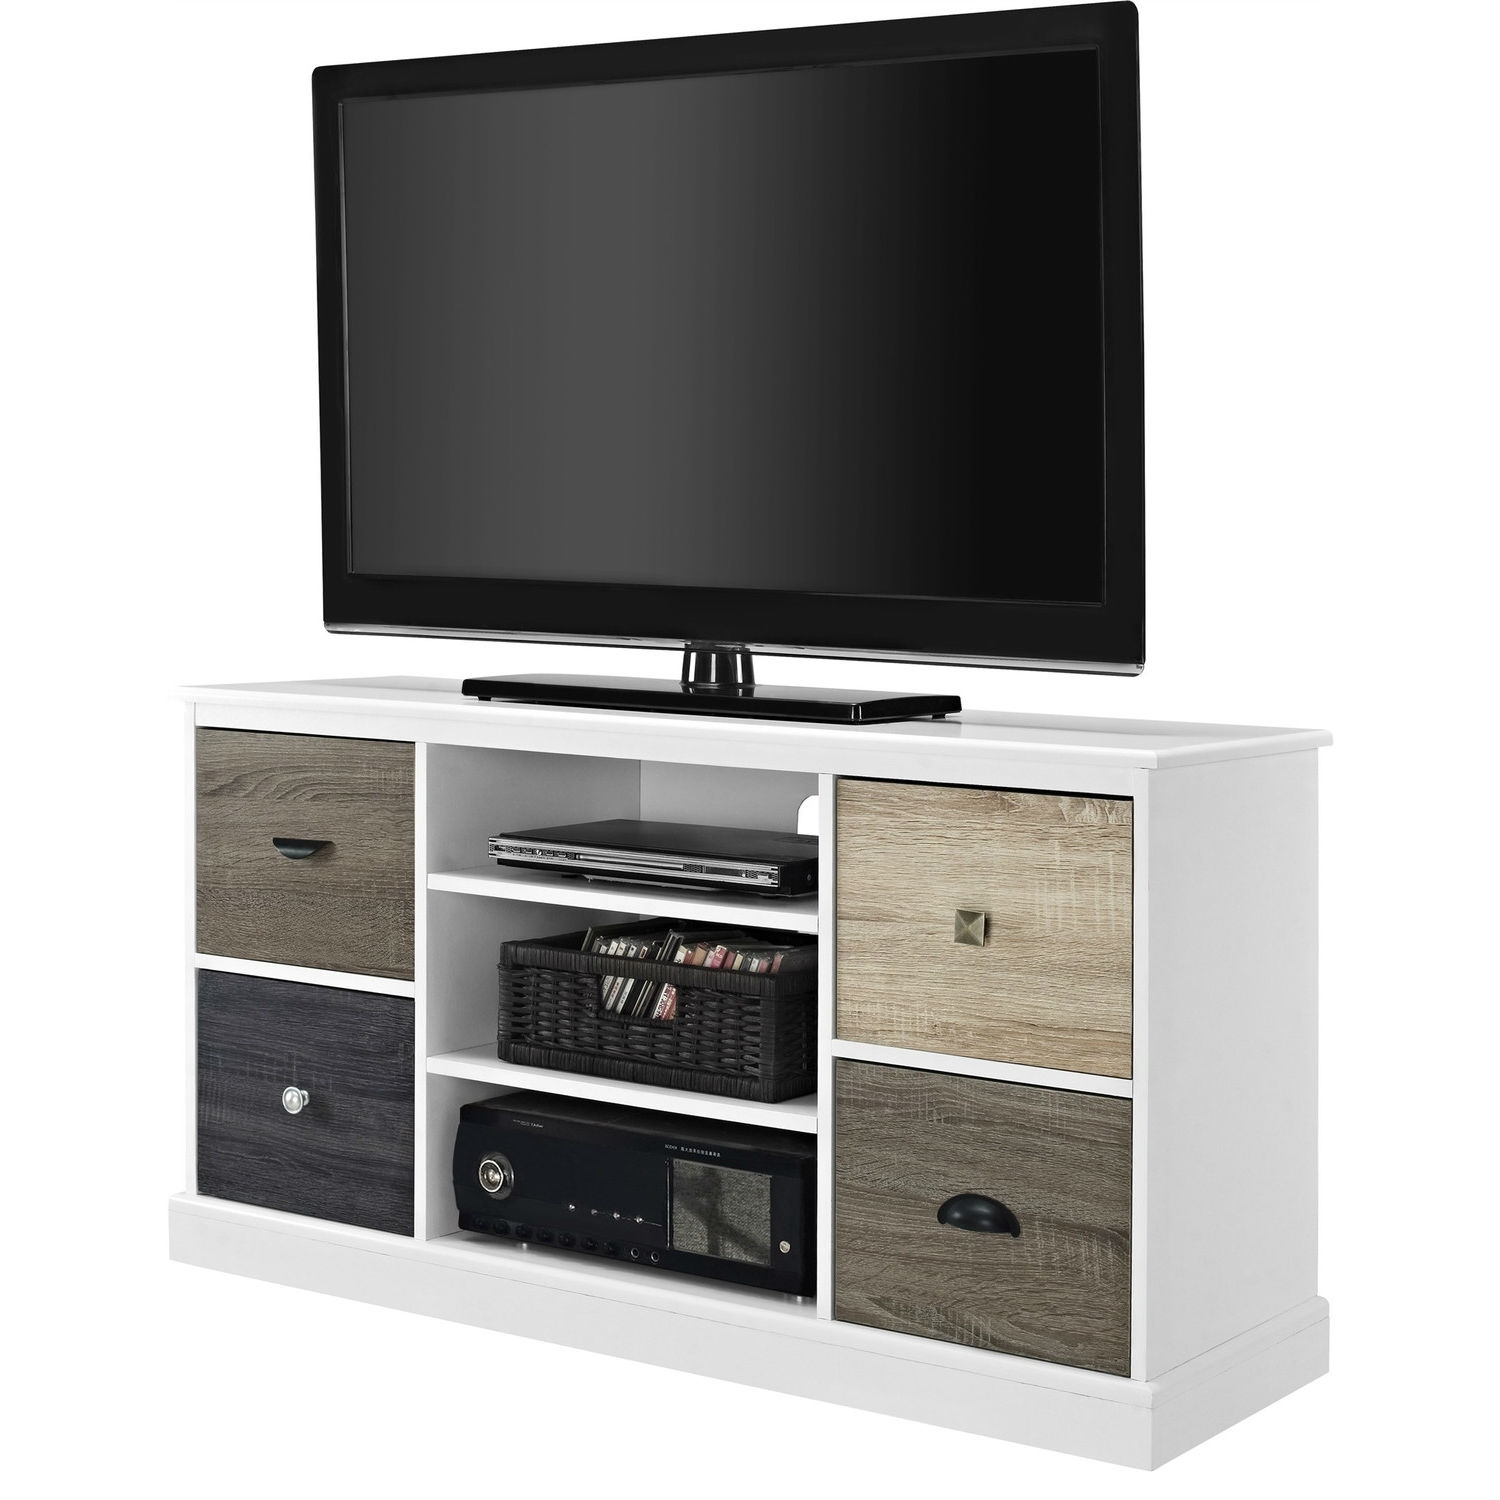 White Wood Finish Tv Stand With Multi Wood Grain Finish Drawer Door